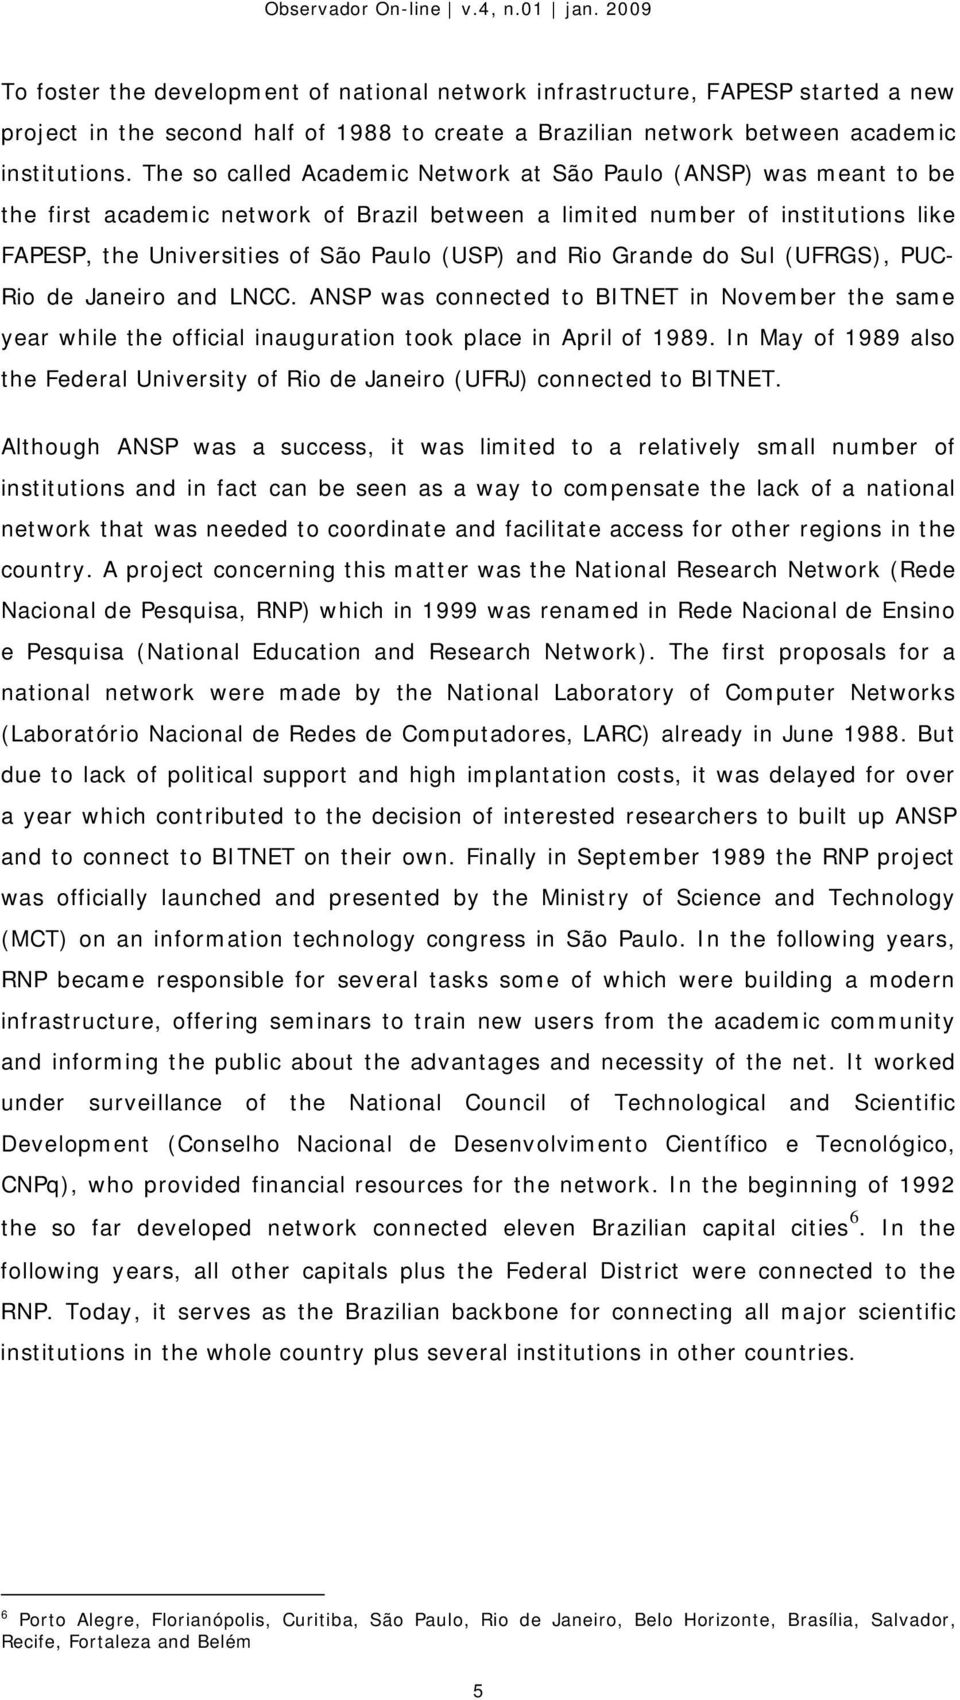 Rio Grande do Sul (UFRGS), PUC- Rio de Janeiro and LNCC. ANSP was connected to BITNET in November the same year while the official inauguration took place in April of 1989.